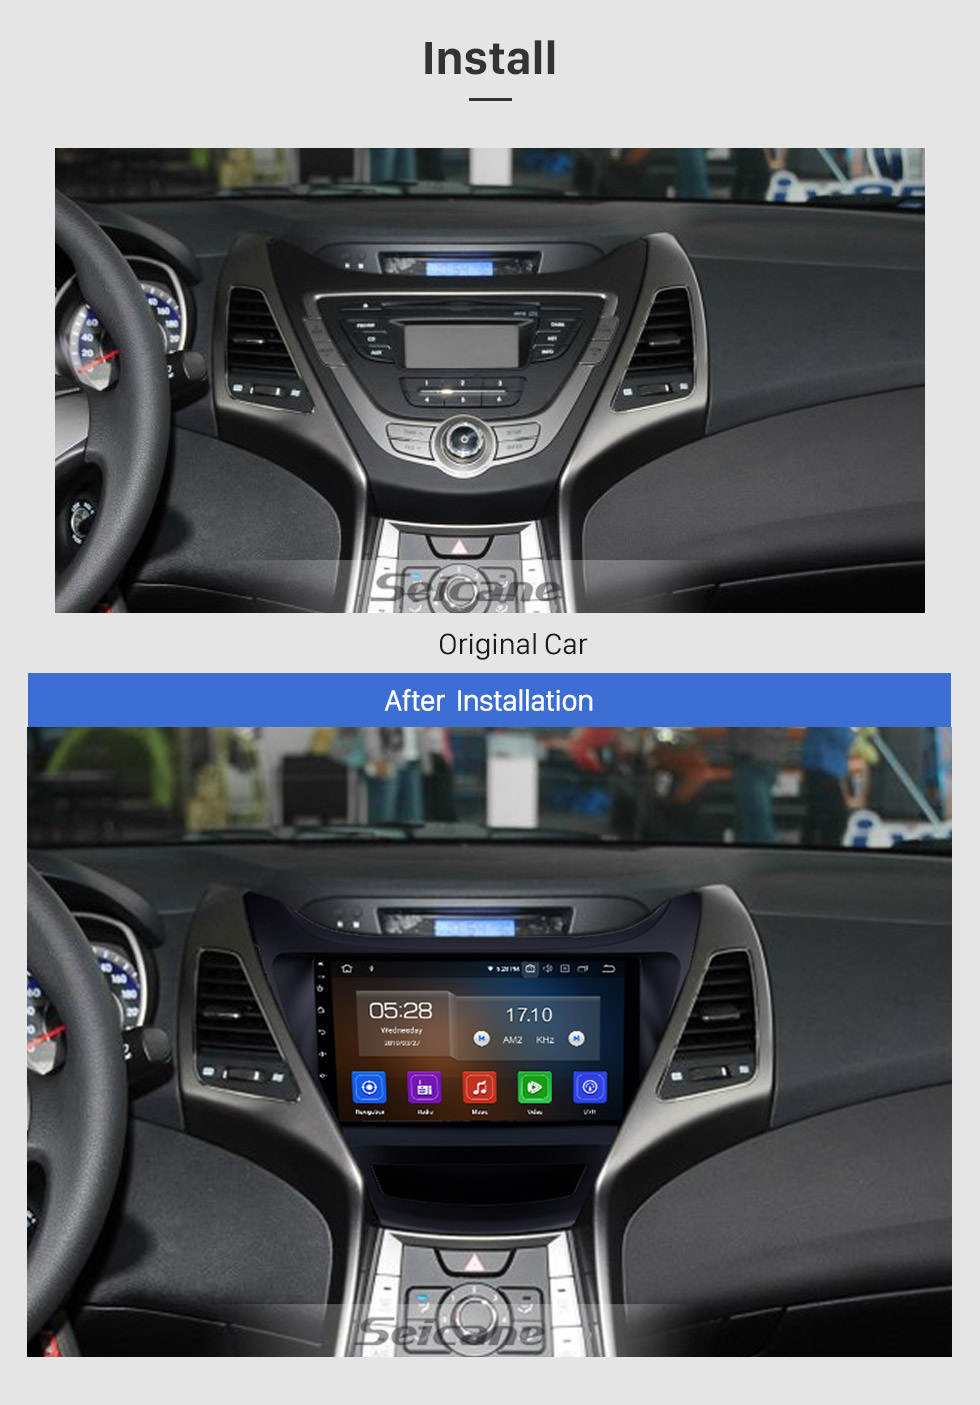 Seicane OEM 9 inch Android 9.0 2014-2015 Hyundai Elantra Radio Upgrade with DVD GPS Stereo Bluetooth Mirror Link OBD2 AUX 3G WiFi DVR